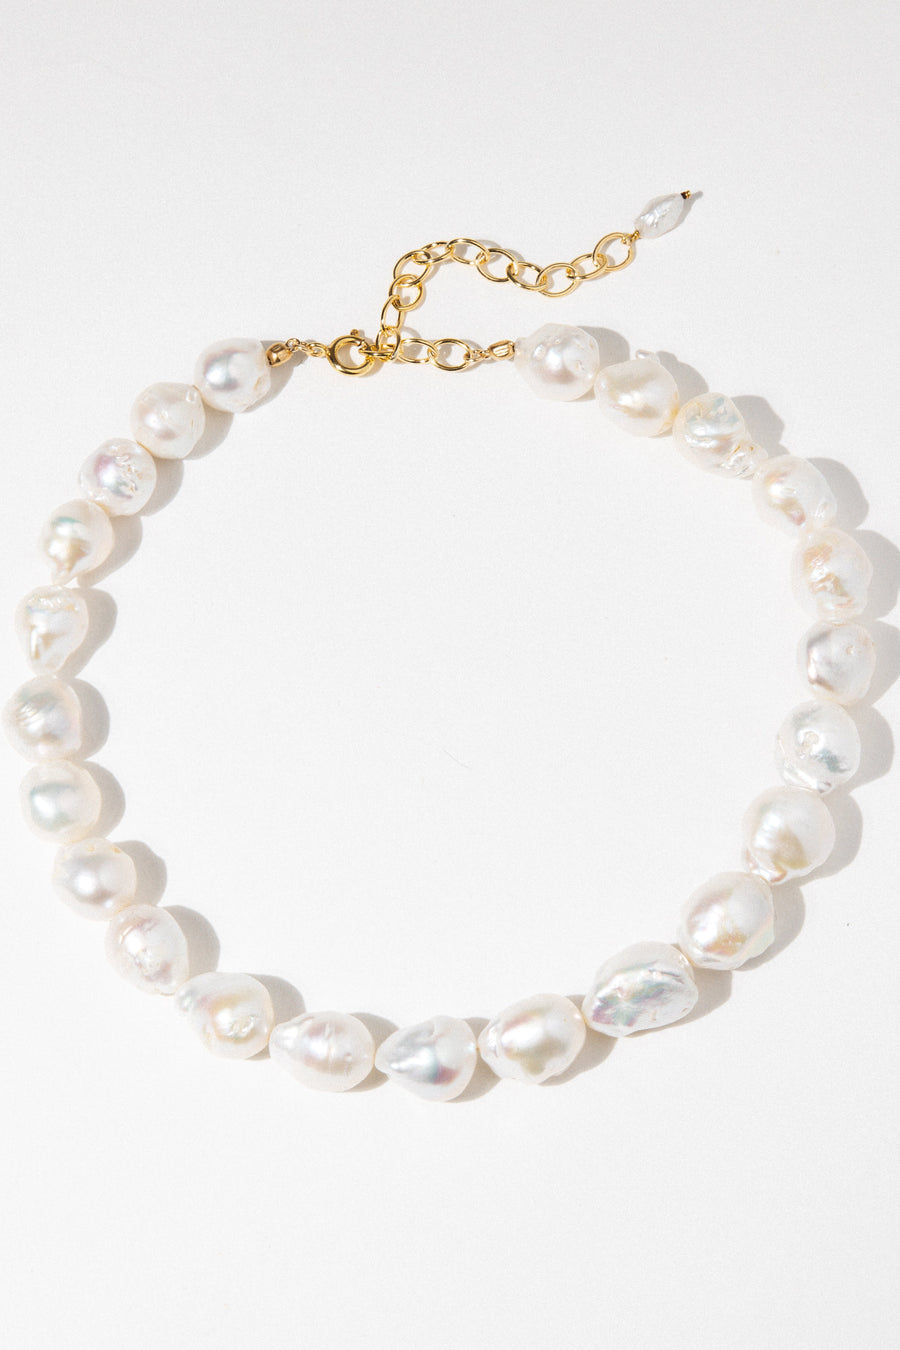 imperial gems Jewelry Gold / 14 Inches Imperial Pearl Necklace